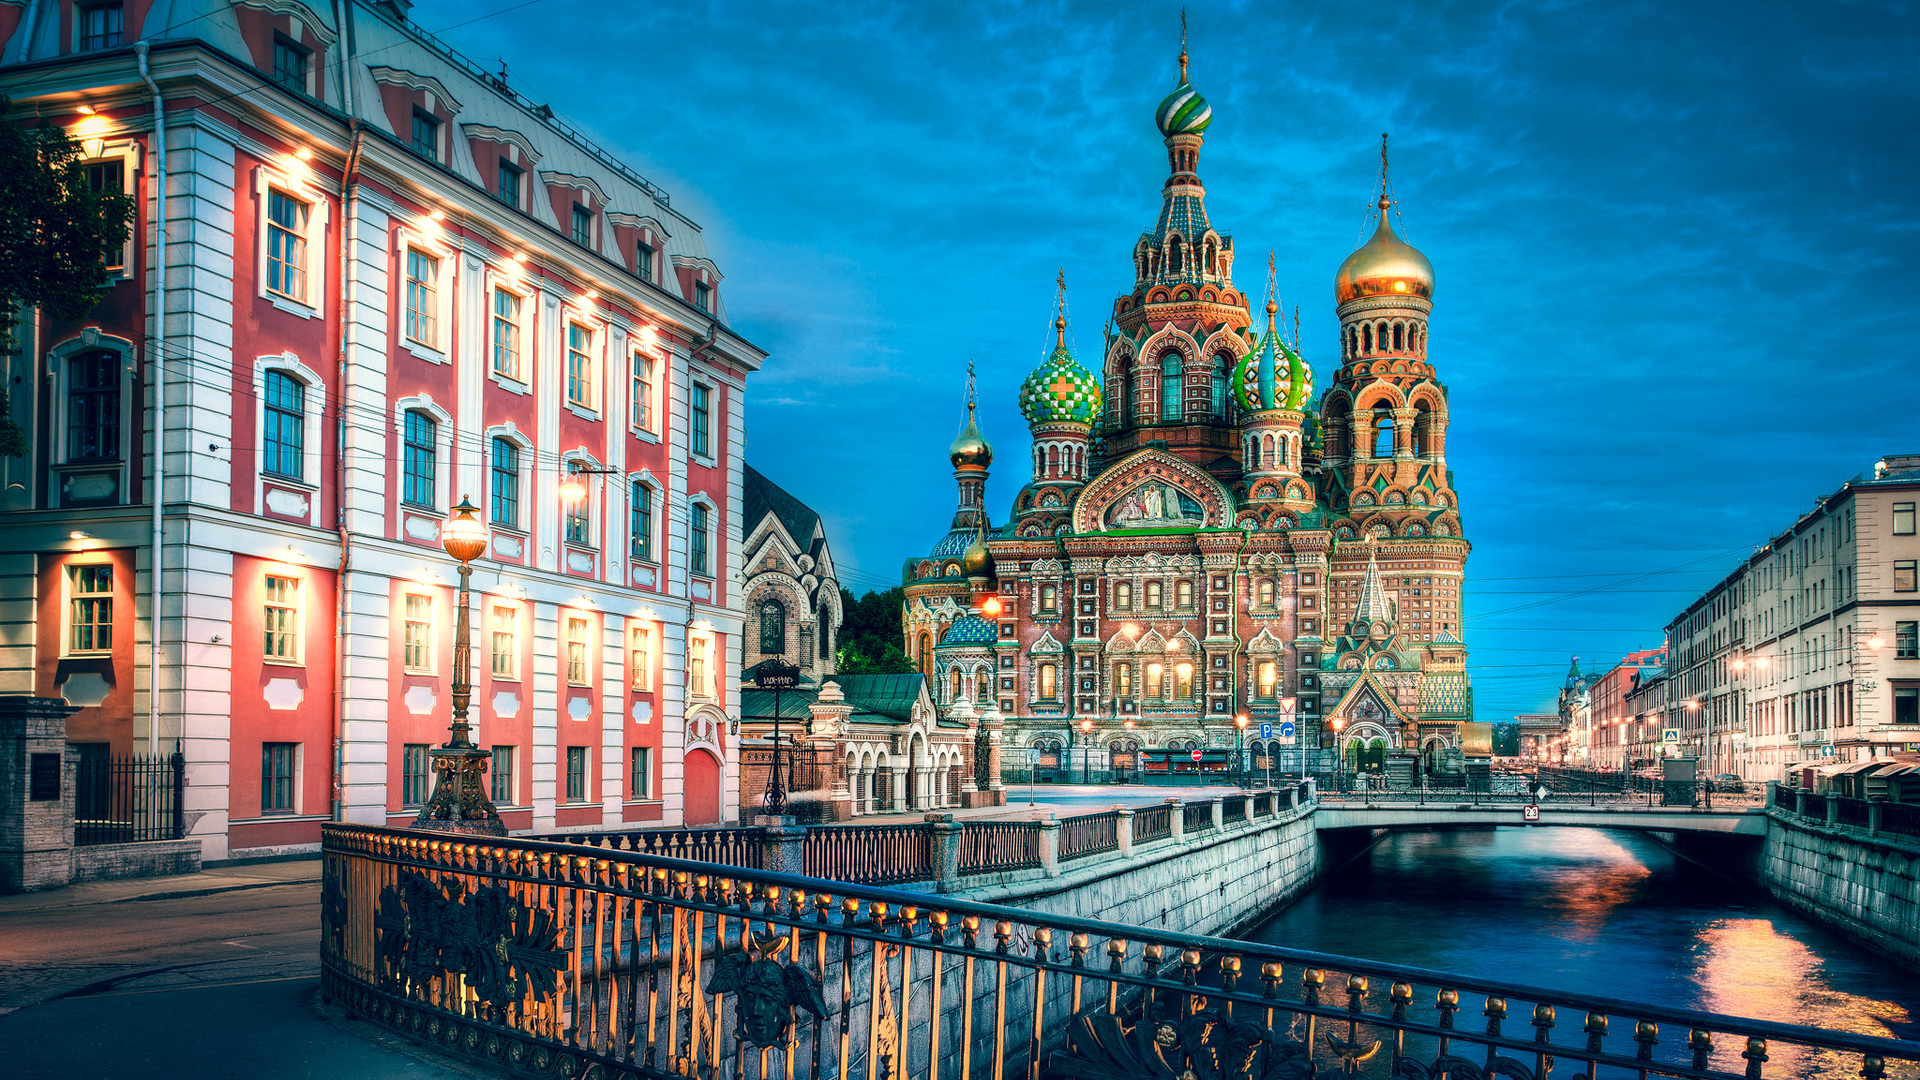 church-of-our-savior-on-the-spilled-blood-in-st-petersburg-hd-wallpaper-578074